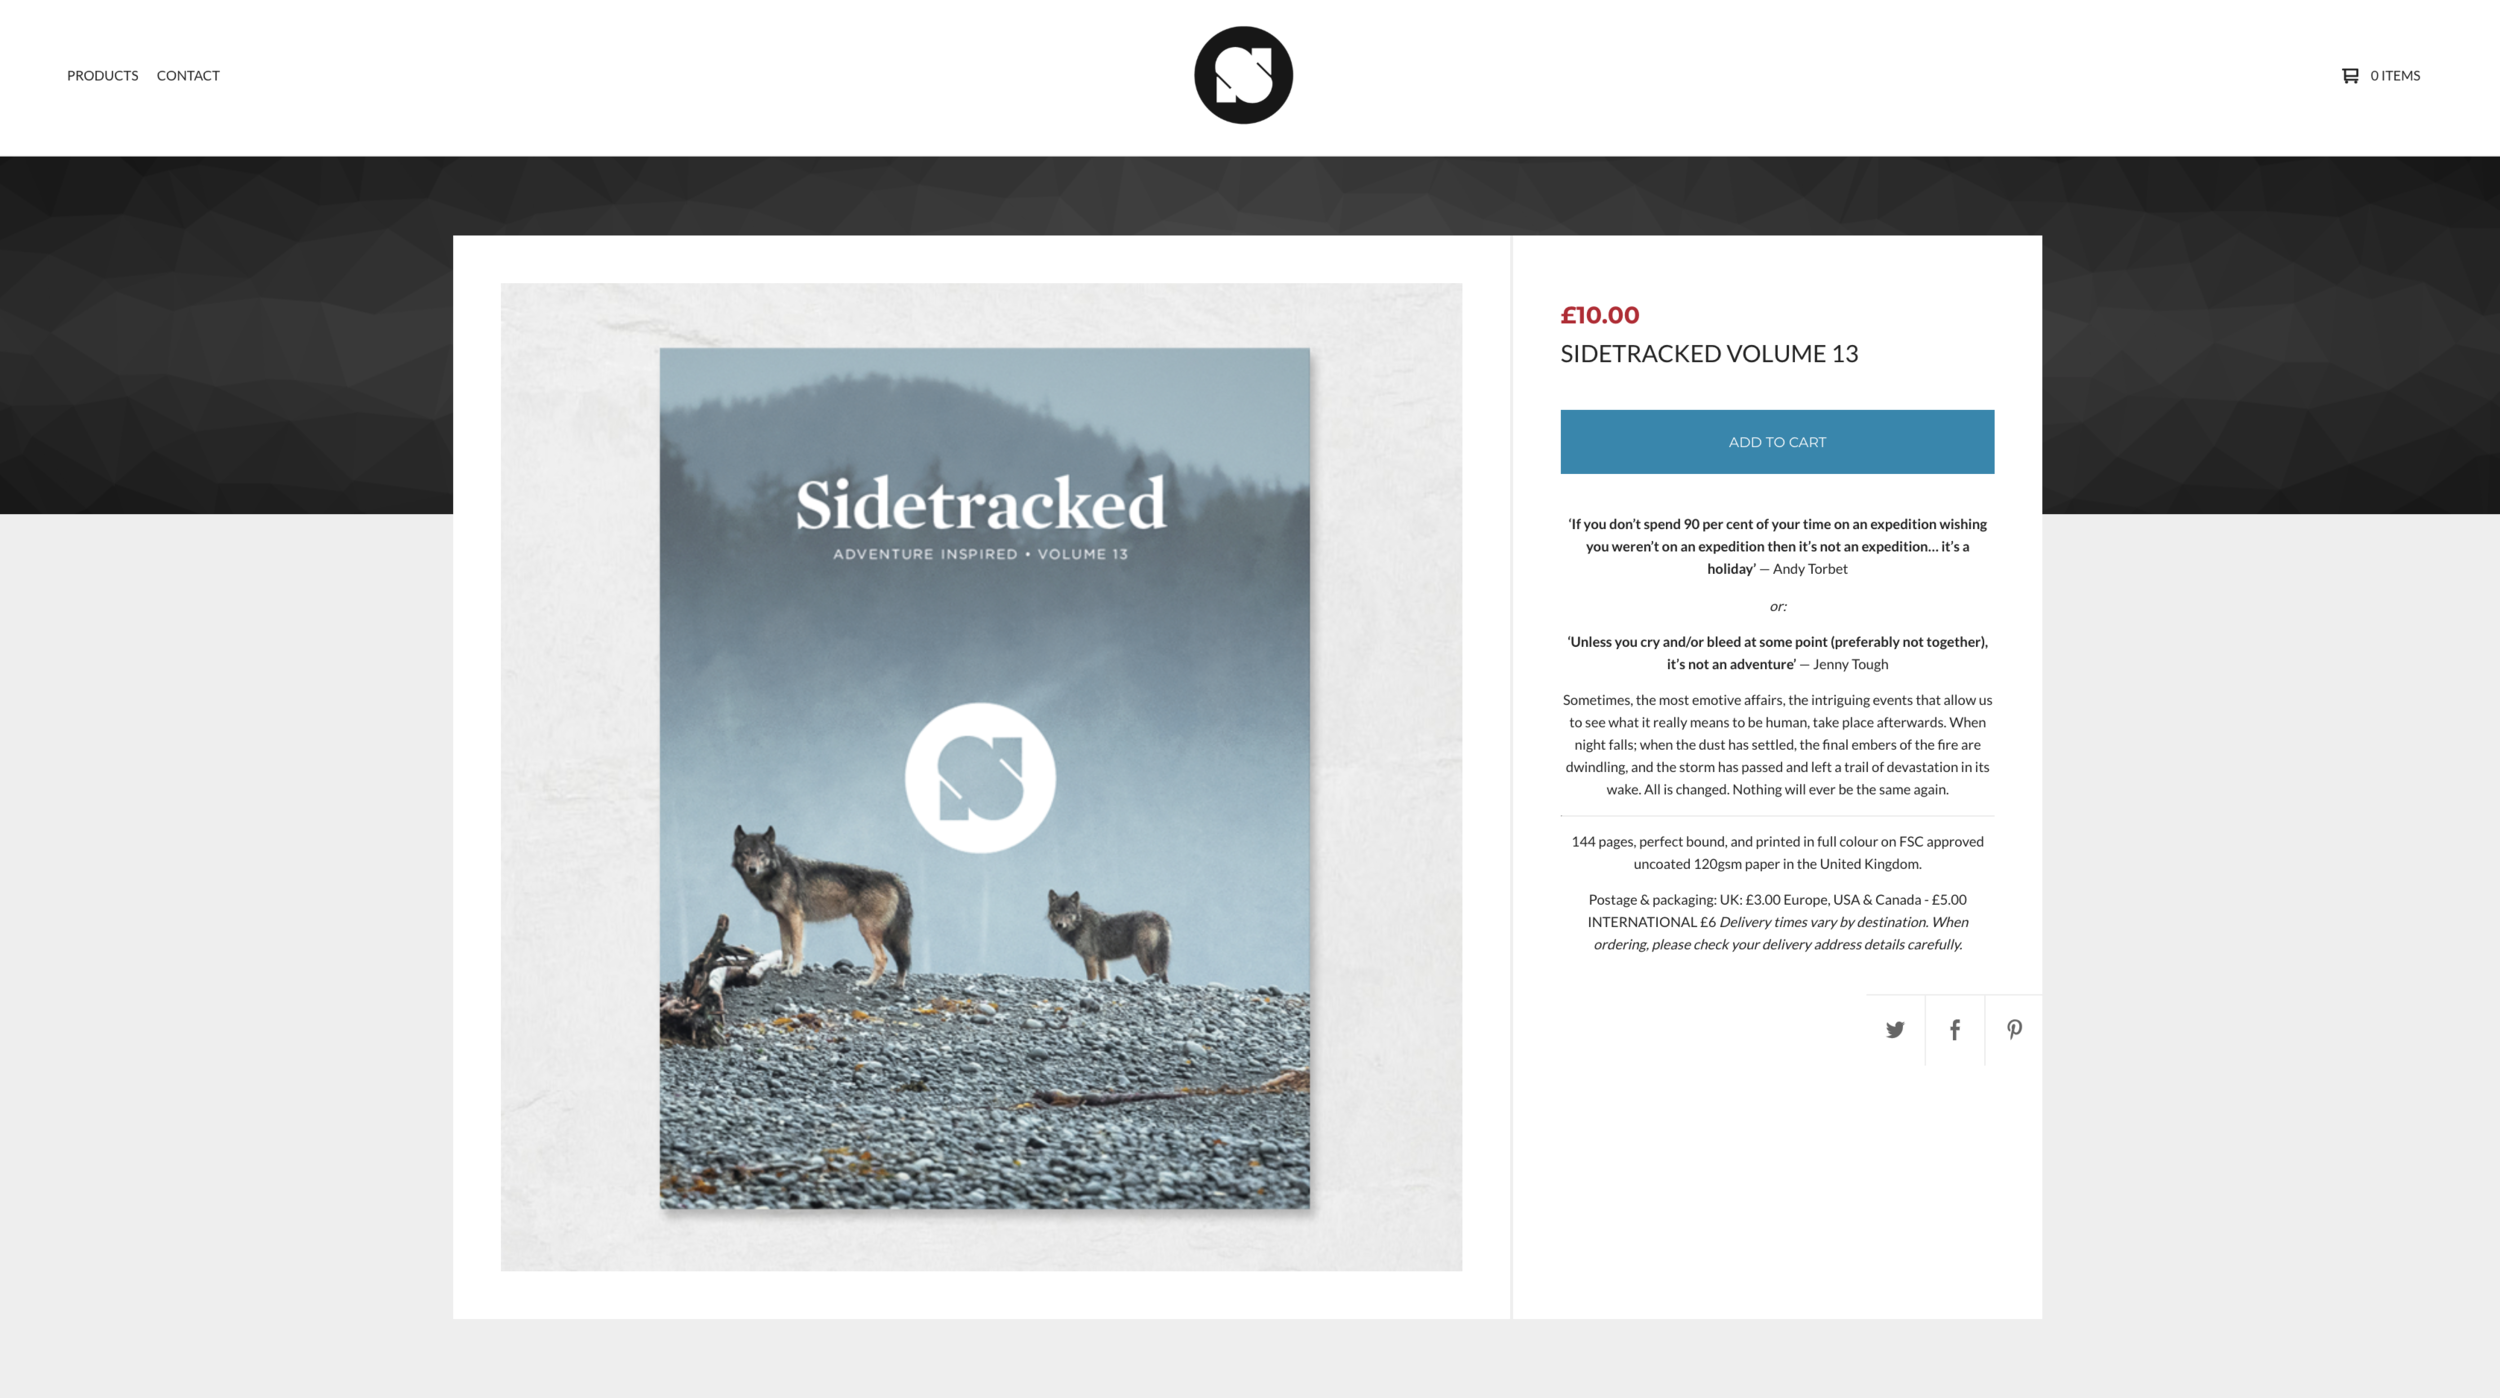 Sidetracked Volume 13 2018 Cover Shot and Ten Page Spread